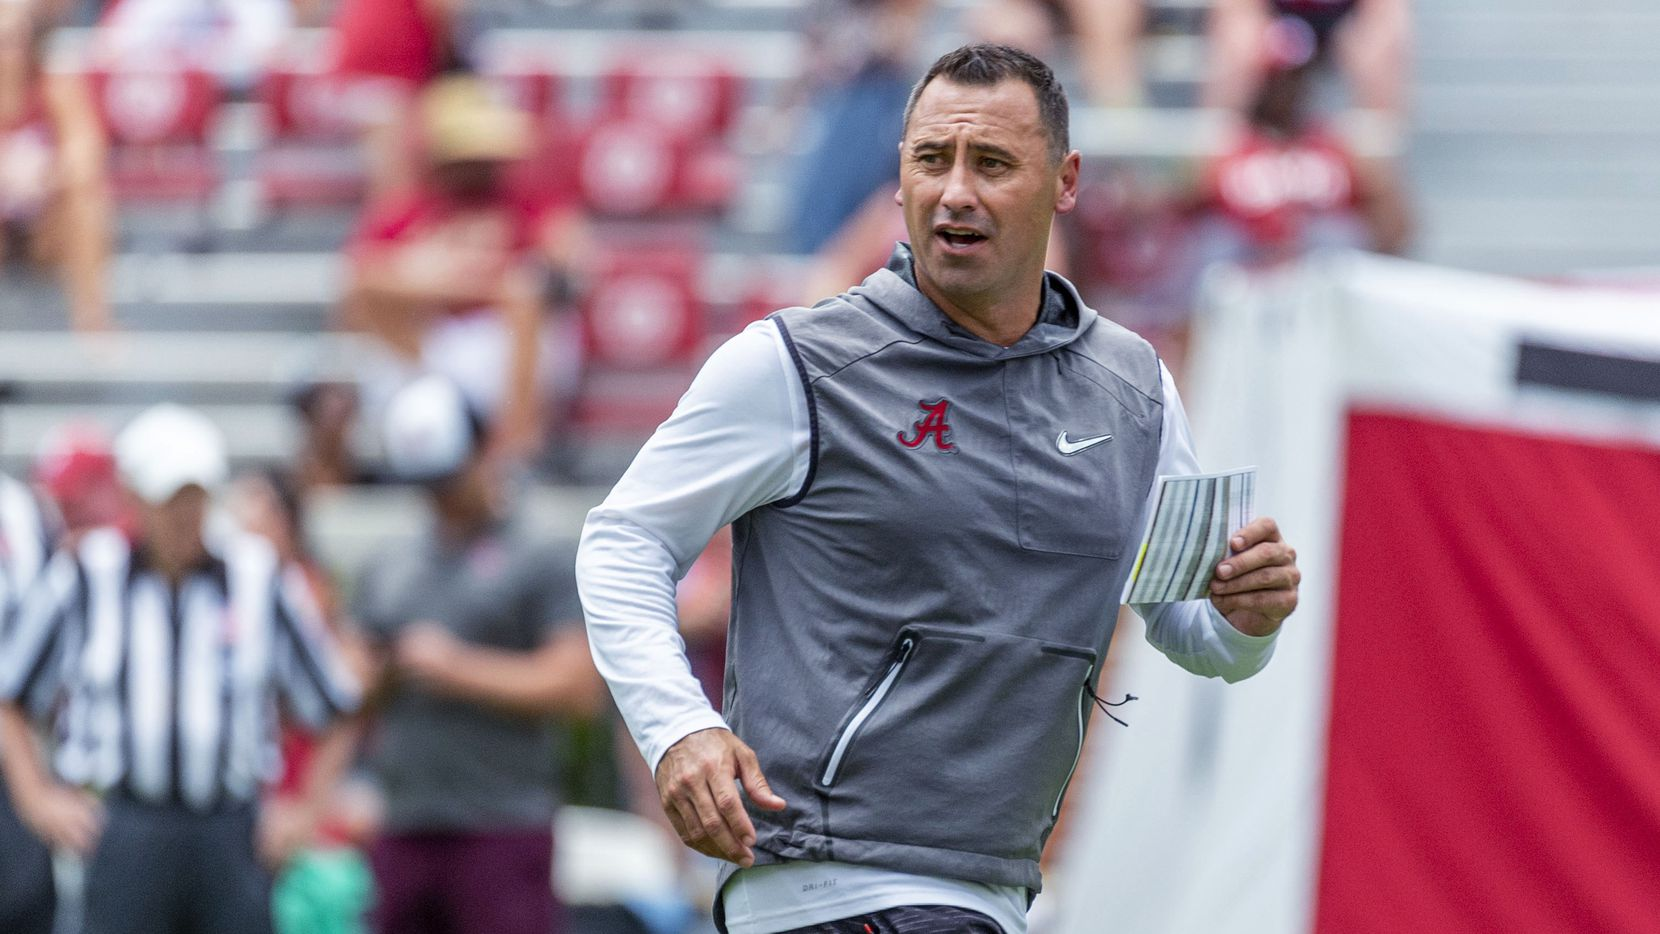 Alabama offensive coordinator Steve Sarkisian works his payers through drills during an NCAA college fall camp fan-day college football scrimmage, Saturday, Aug. 3, 2019, at Bryant-Denny Stadium in Tuscaloosa, Ala.